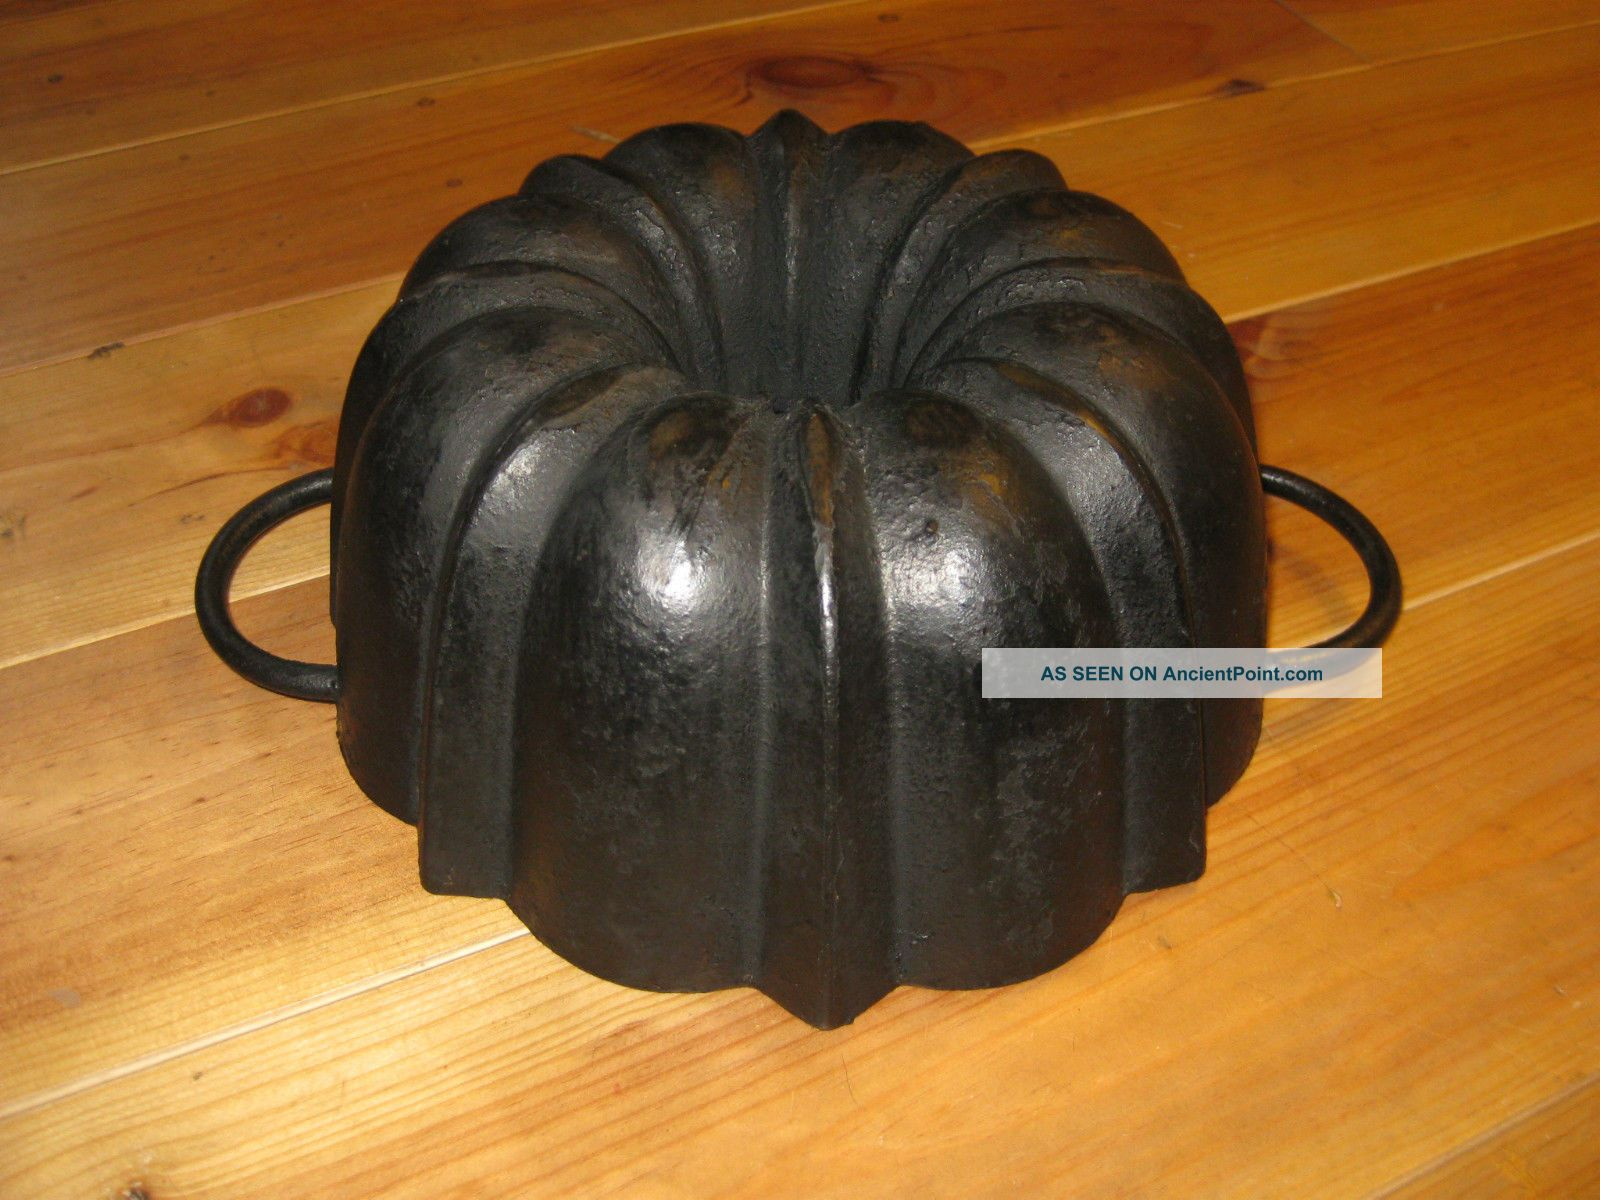 Very Old And Top Antique Cast Iron Bundt Pan Germany 3210 G Other Antique Home & Hearth photo